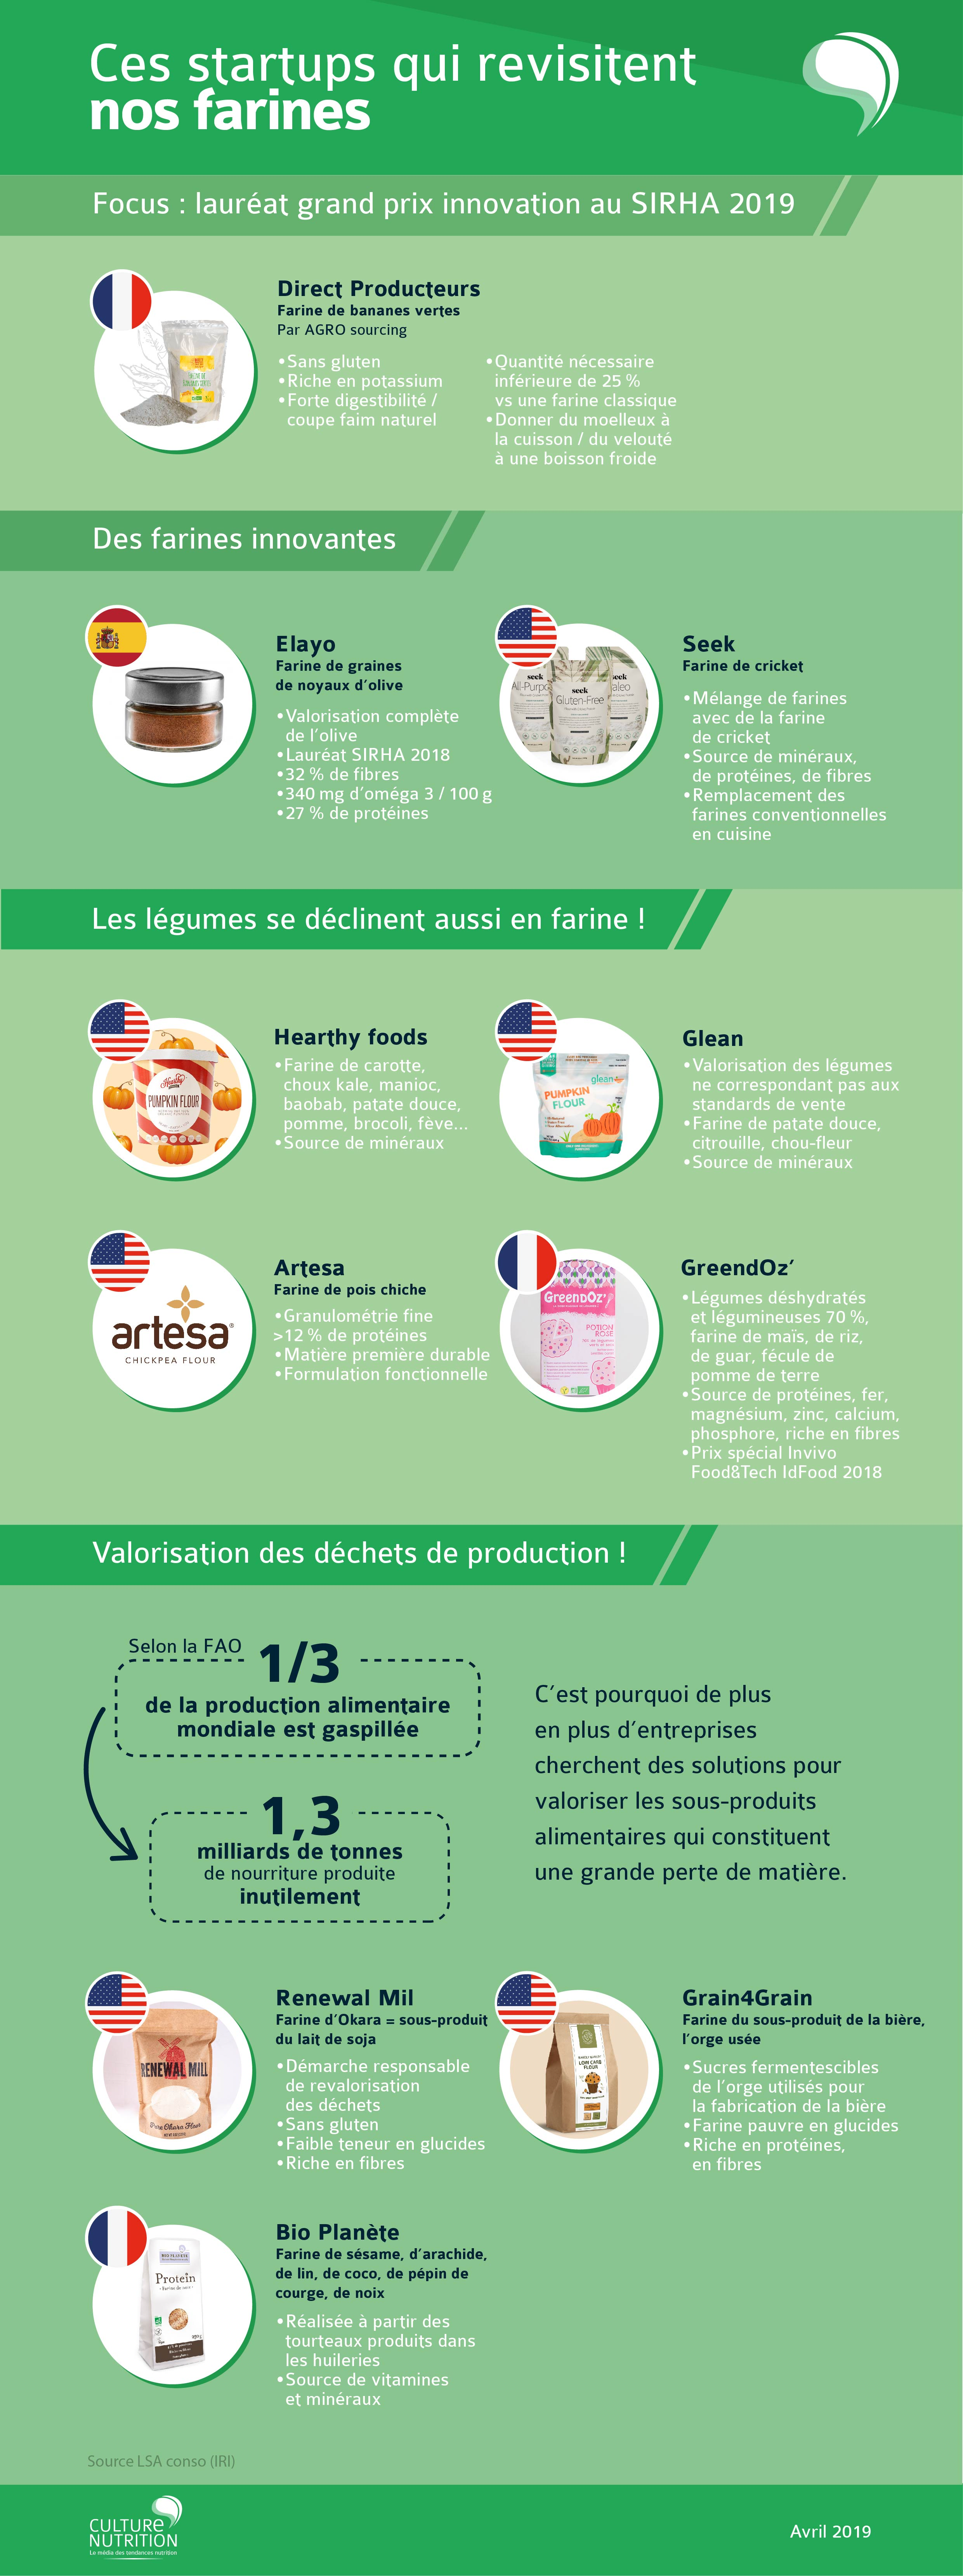 infographie innovations farines